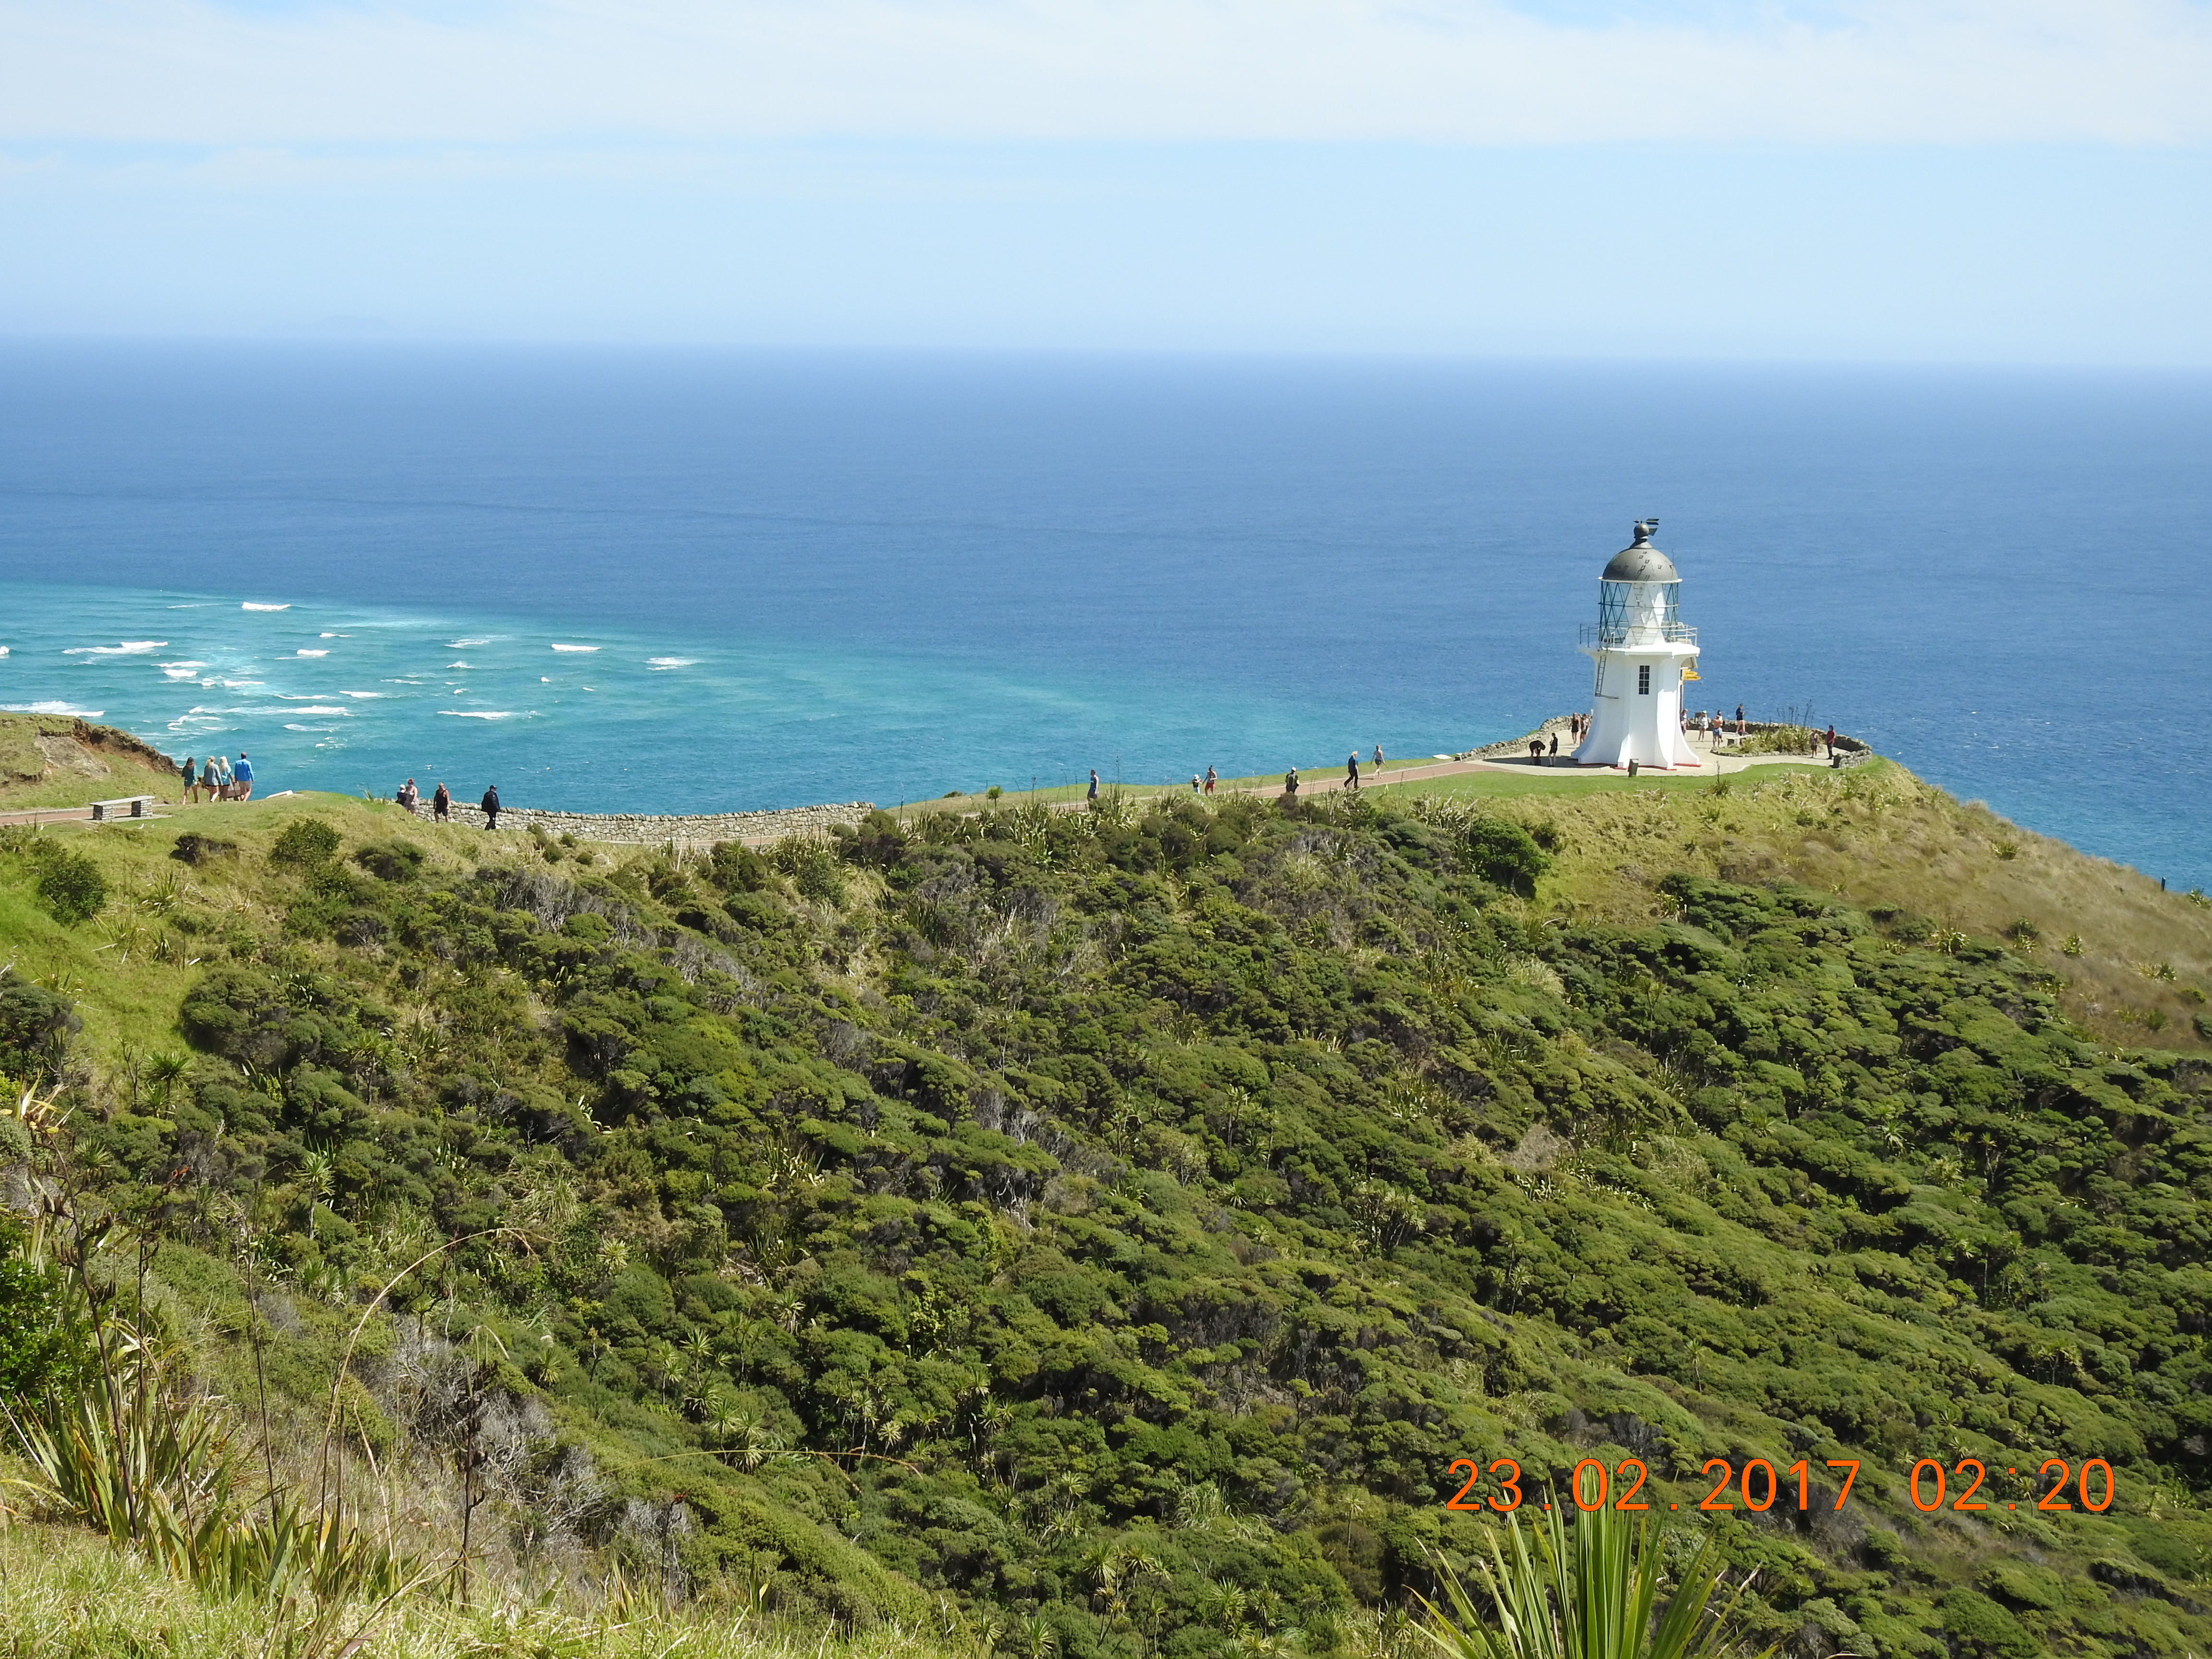 Delights Of Doubtful Bay And Spectacular Scenery Northland